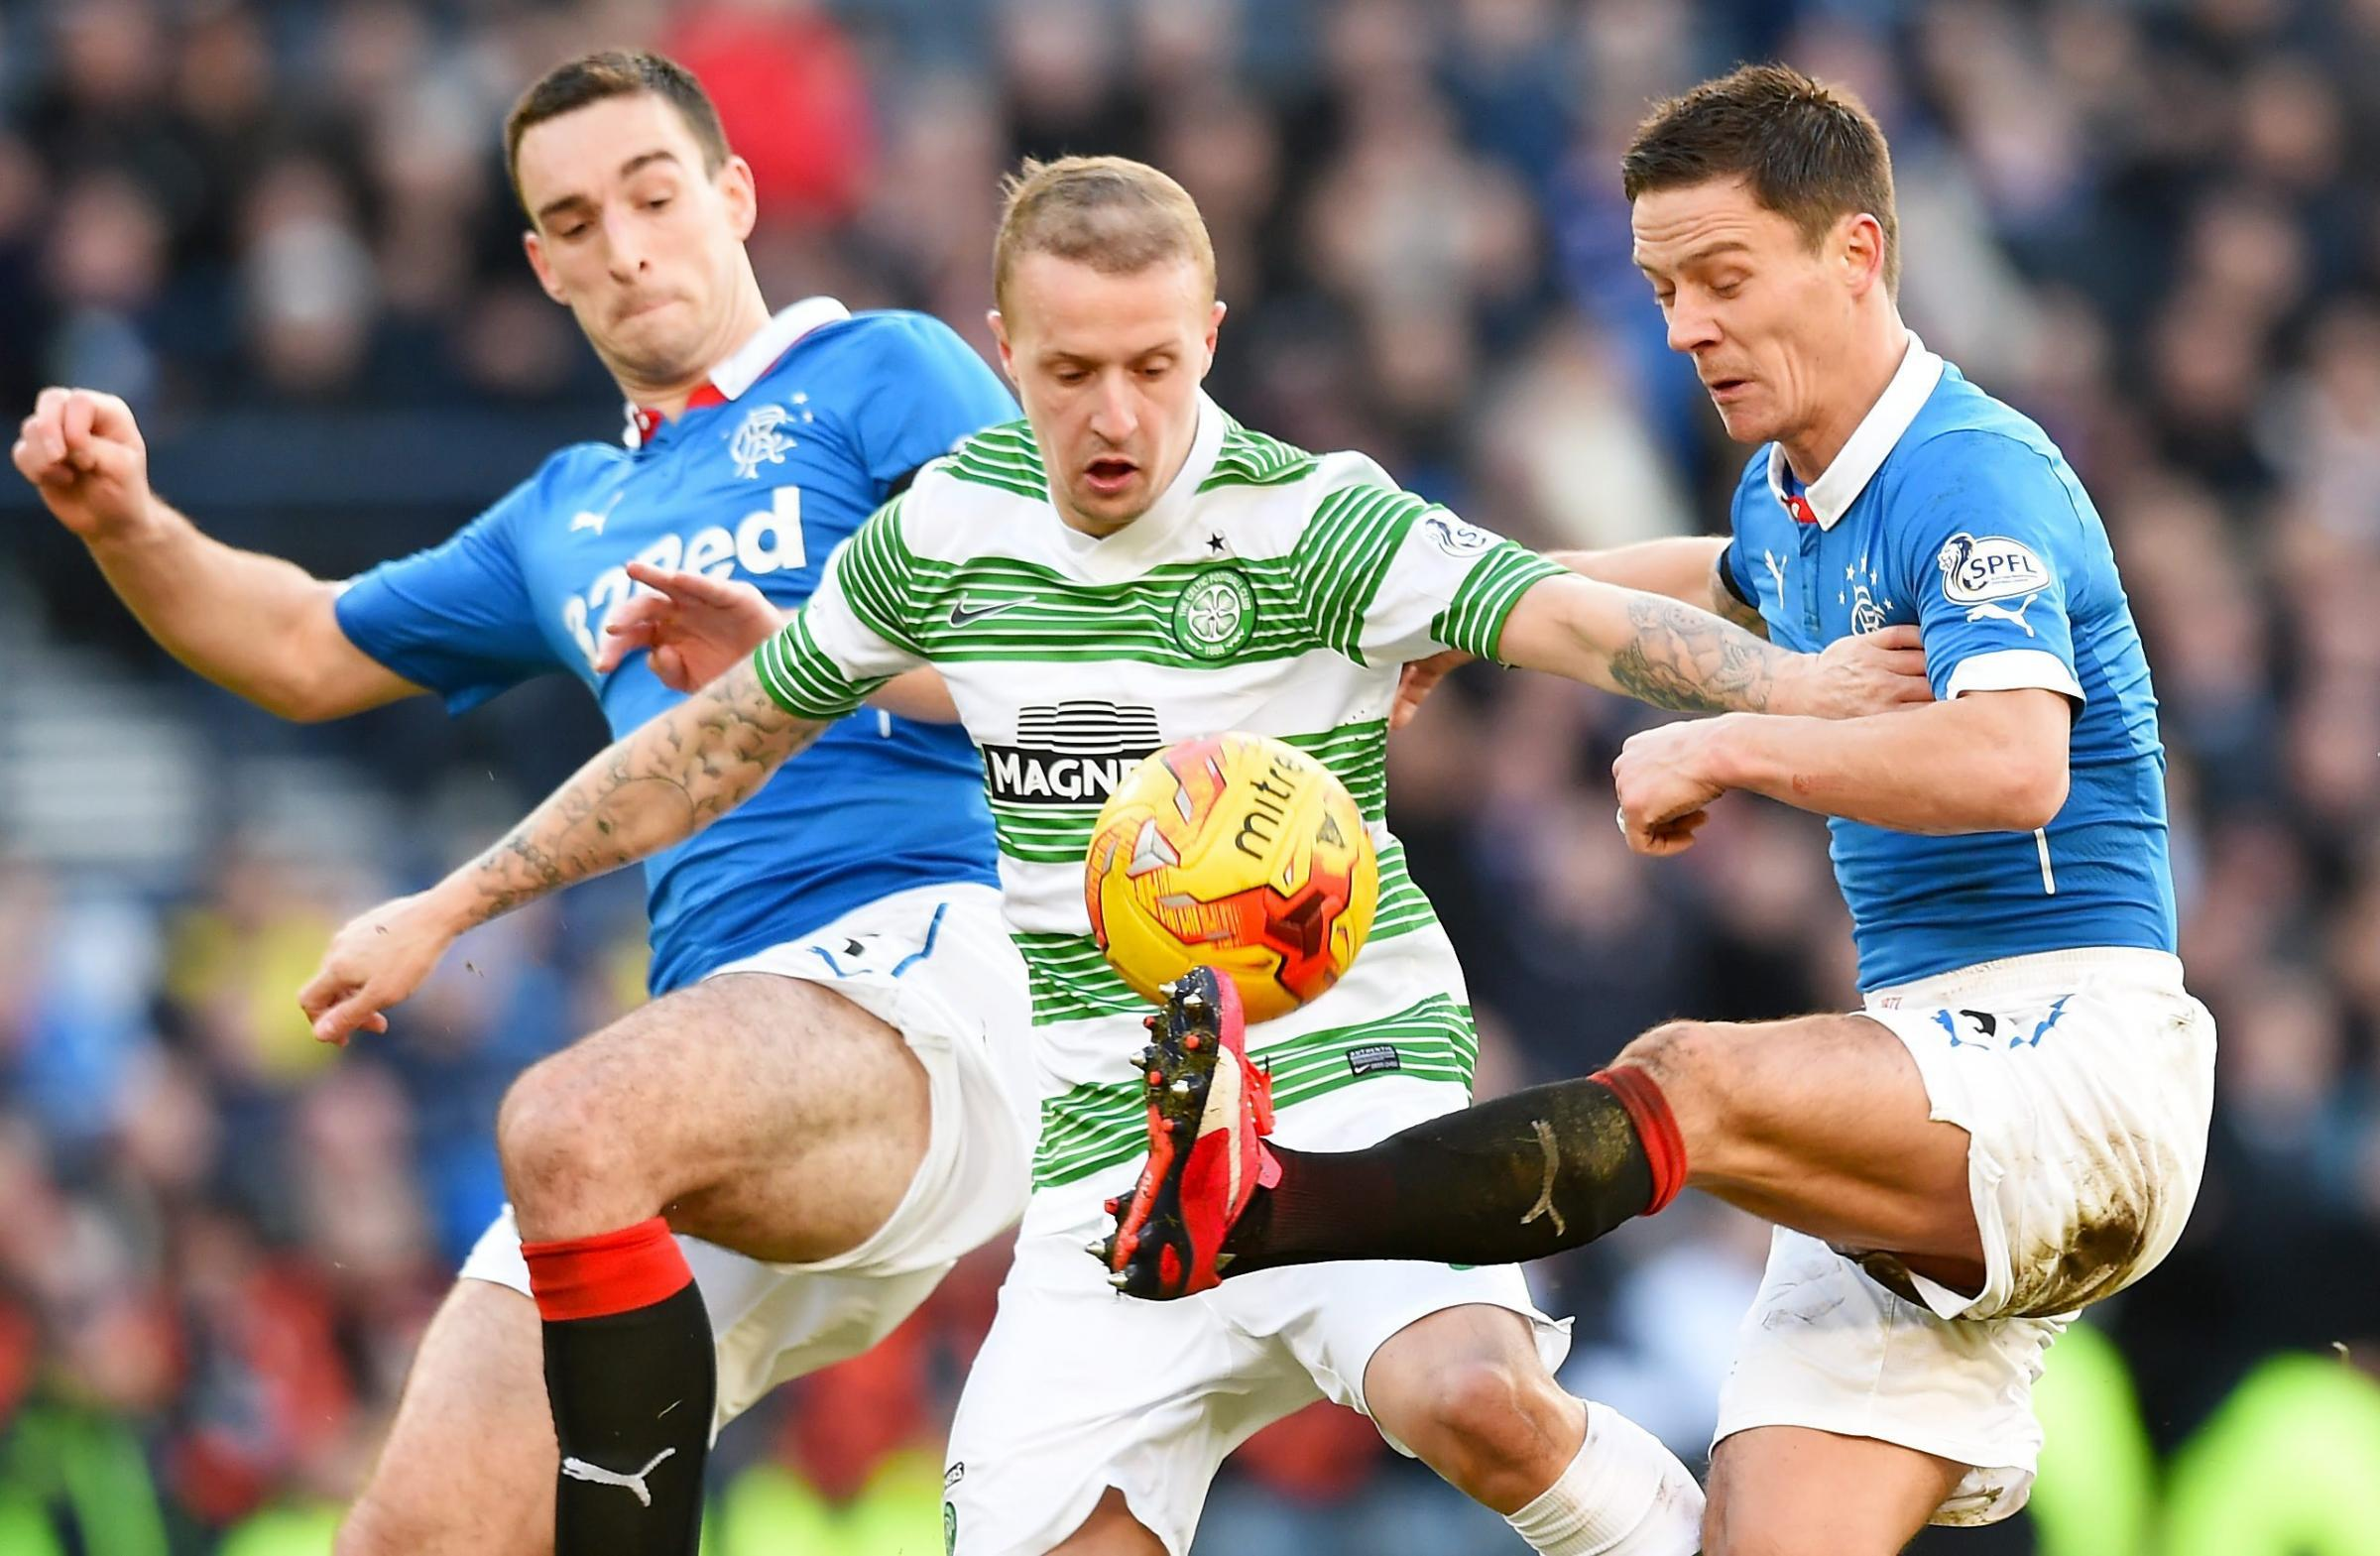 Ian Black, right, in action for Rangers against Celtic last season.